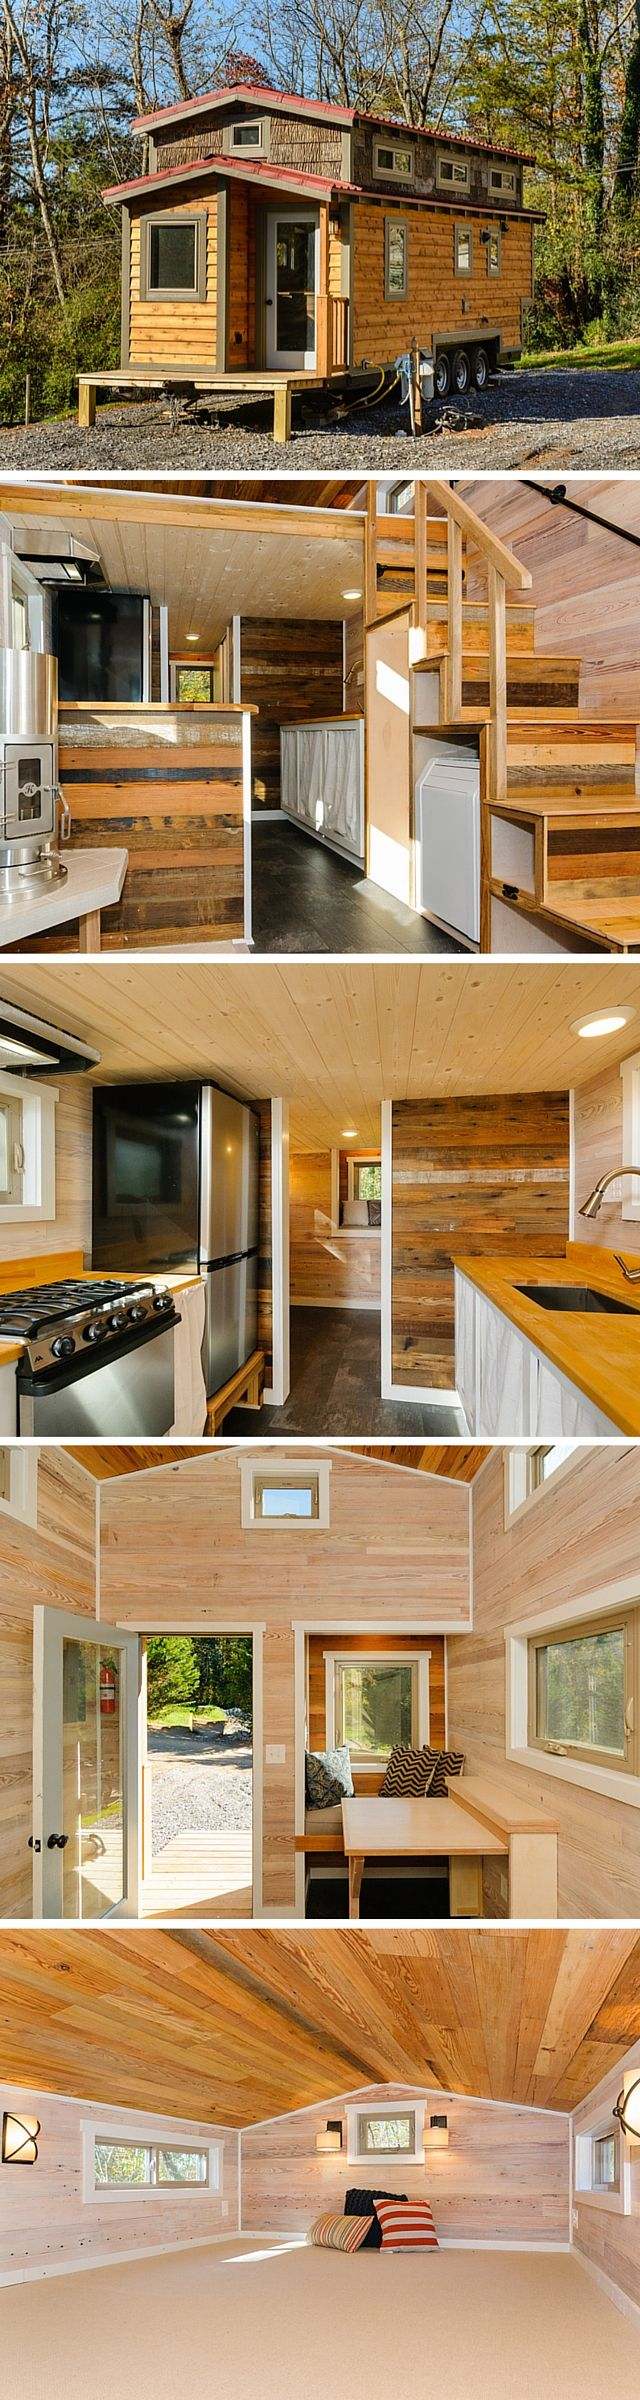 Tiny Home Designs: The MH Tiny House From Wishbone Tiny Homes. A 240 Sq Ft